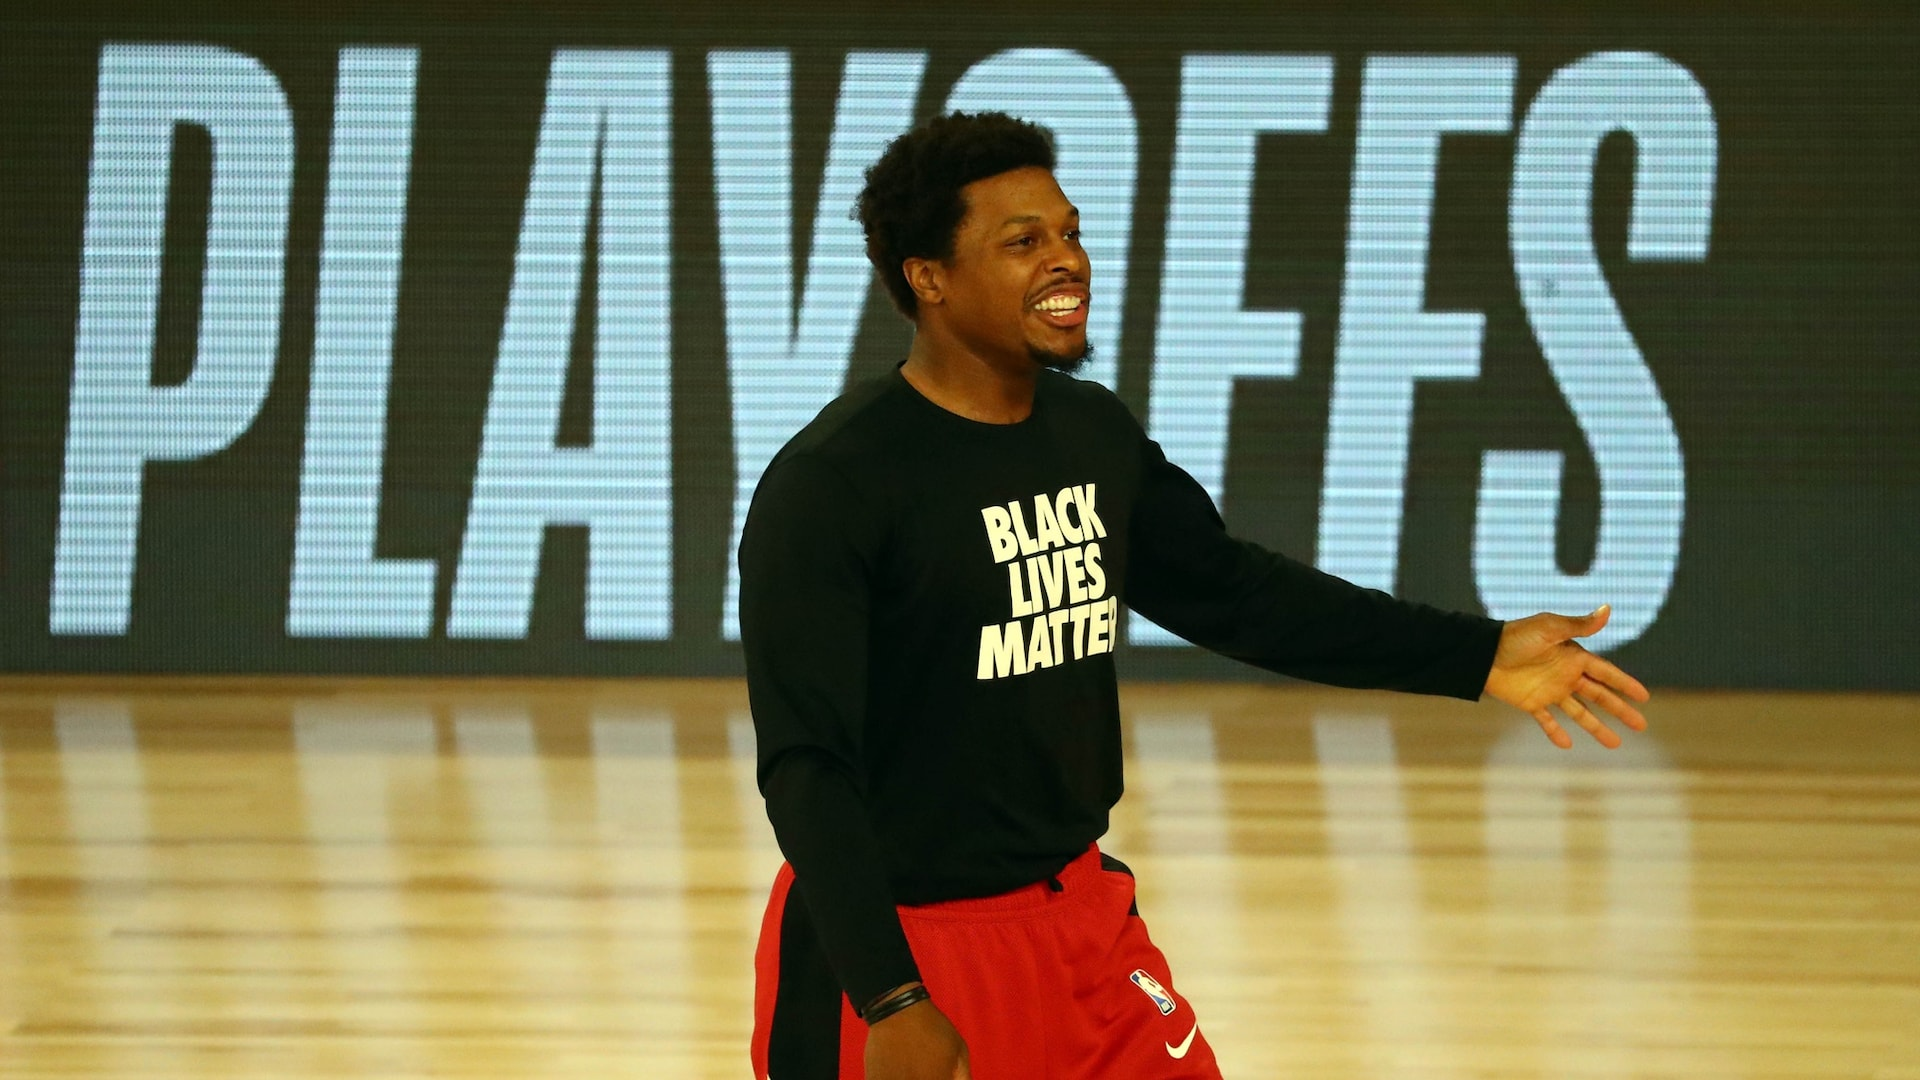 Kyle Lowry available to play in Game 1 vs. Celtics